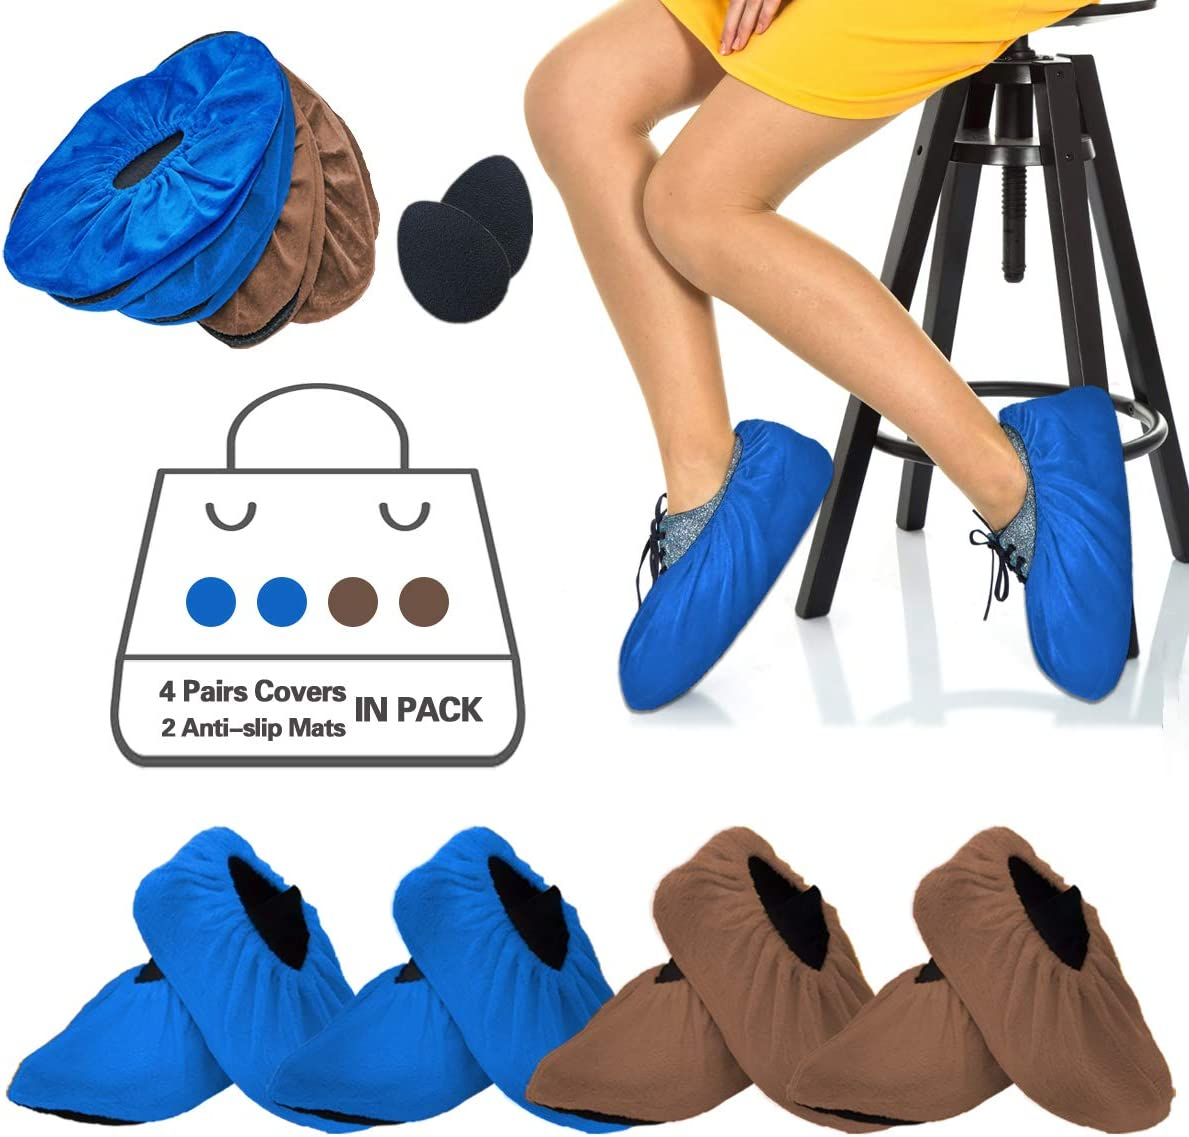 X-large 4 Pairs Washable Reusable Shoe Boot Covers Waterproof Non Slip Booties